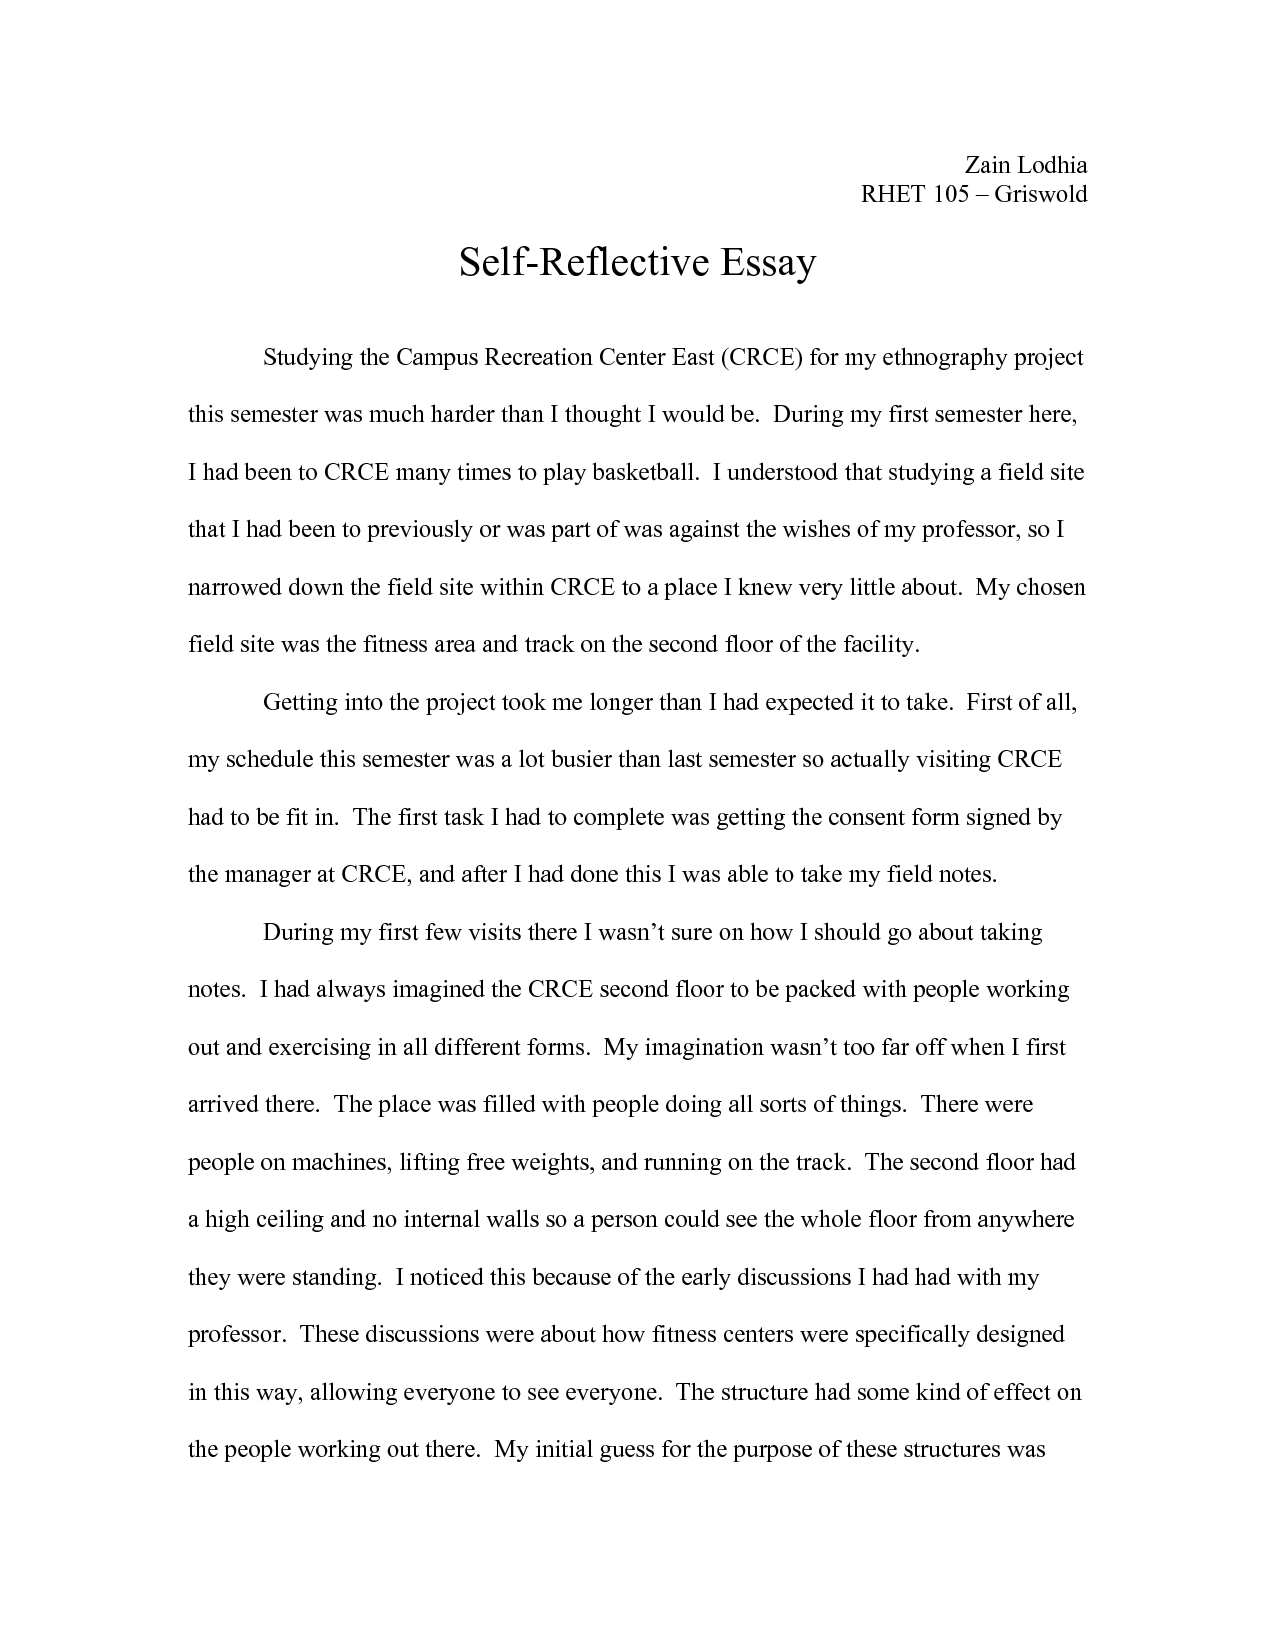 018 Qal0pwnf46 Fitness Essay Exceptional Personal Topics Health And Conclusion Full